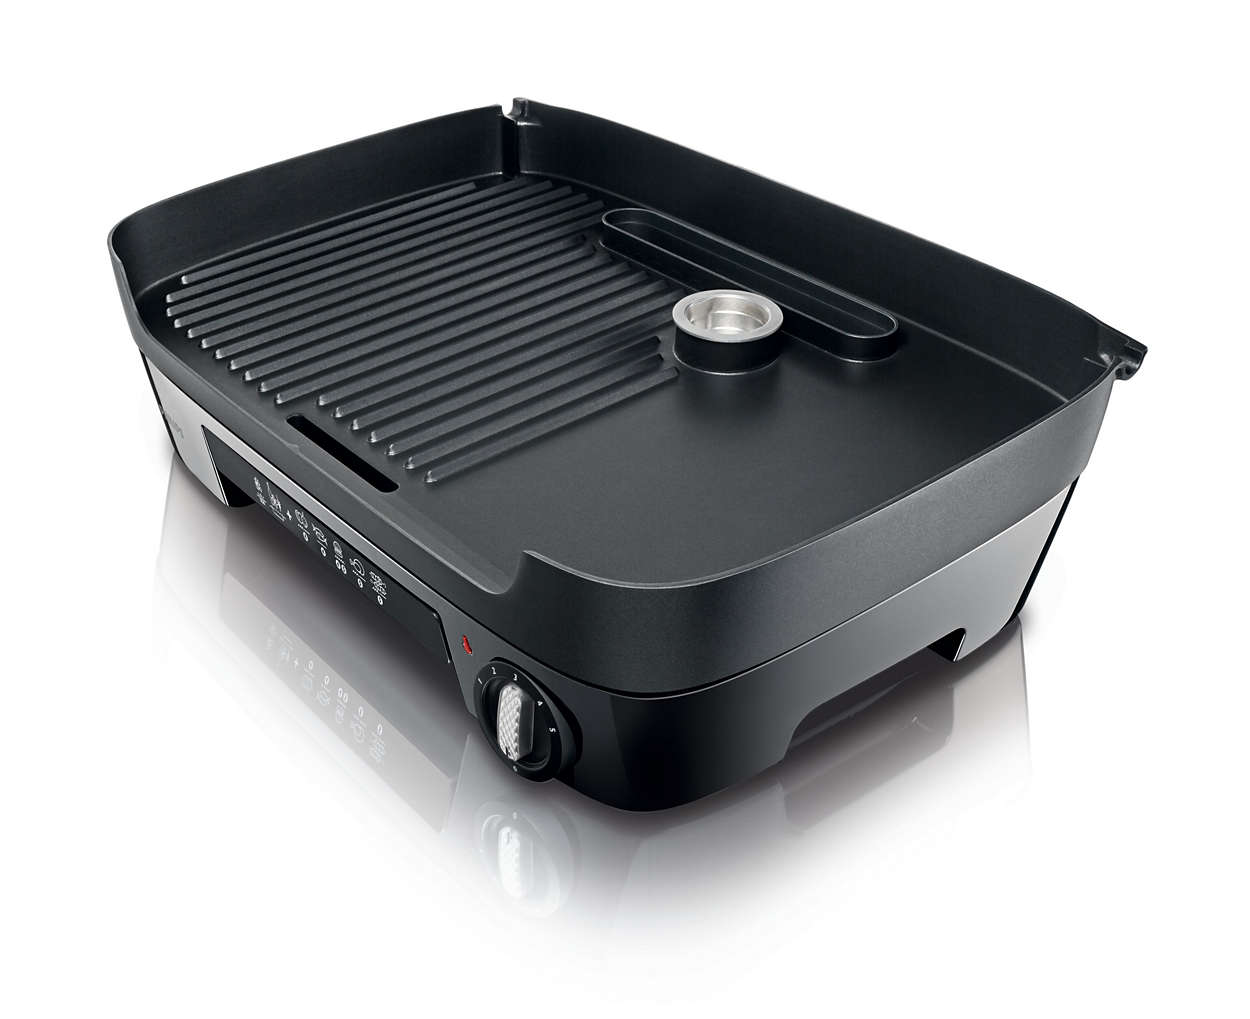 avance collection table grill hd6360 20 philips